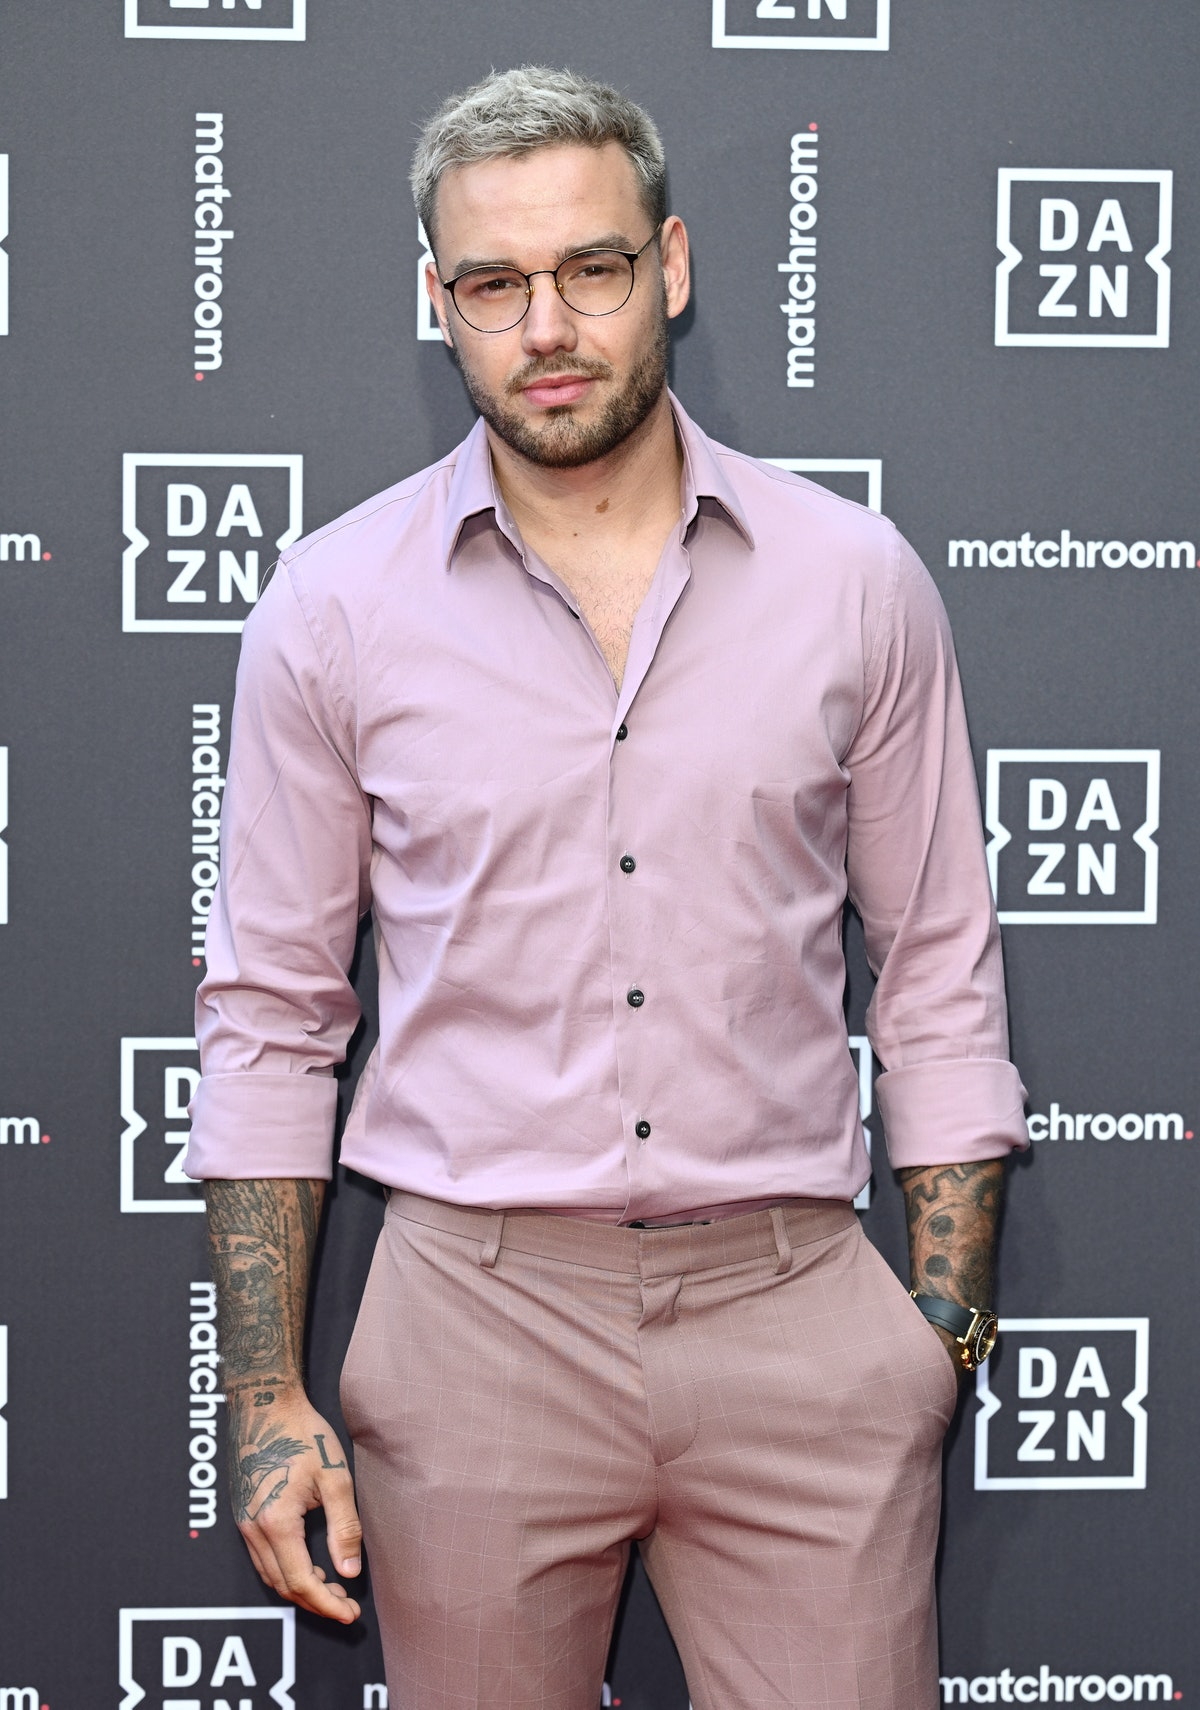 LONDON, ENGLAND - JULY 27: Liam Payne attends the Dazn x Matchroom VIP Launch Event at Kings Cross o...